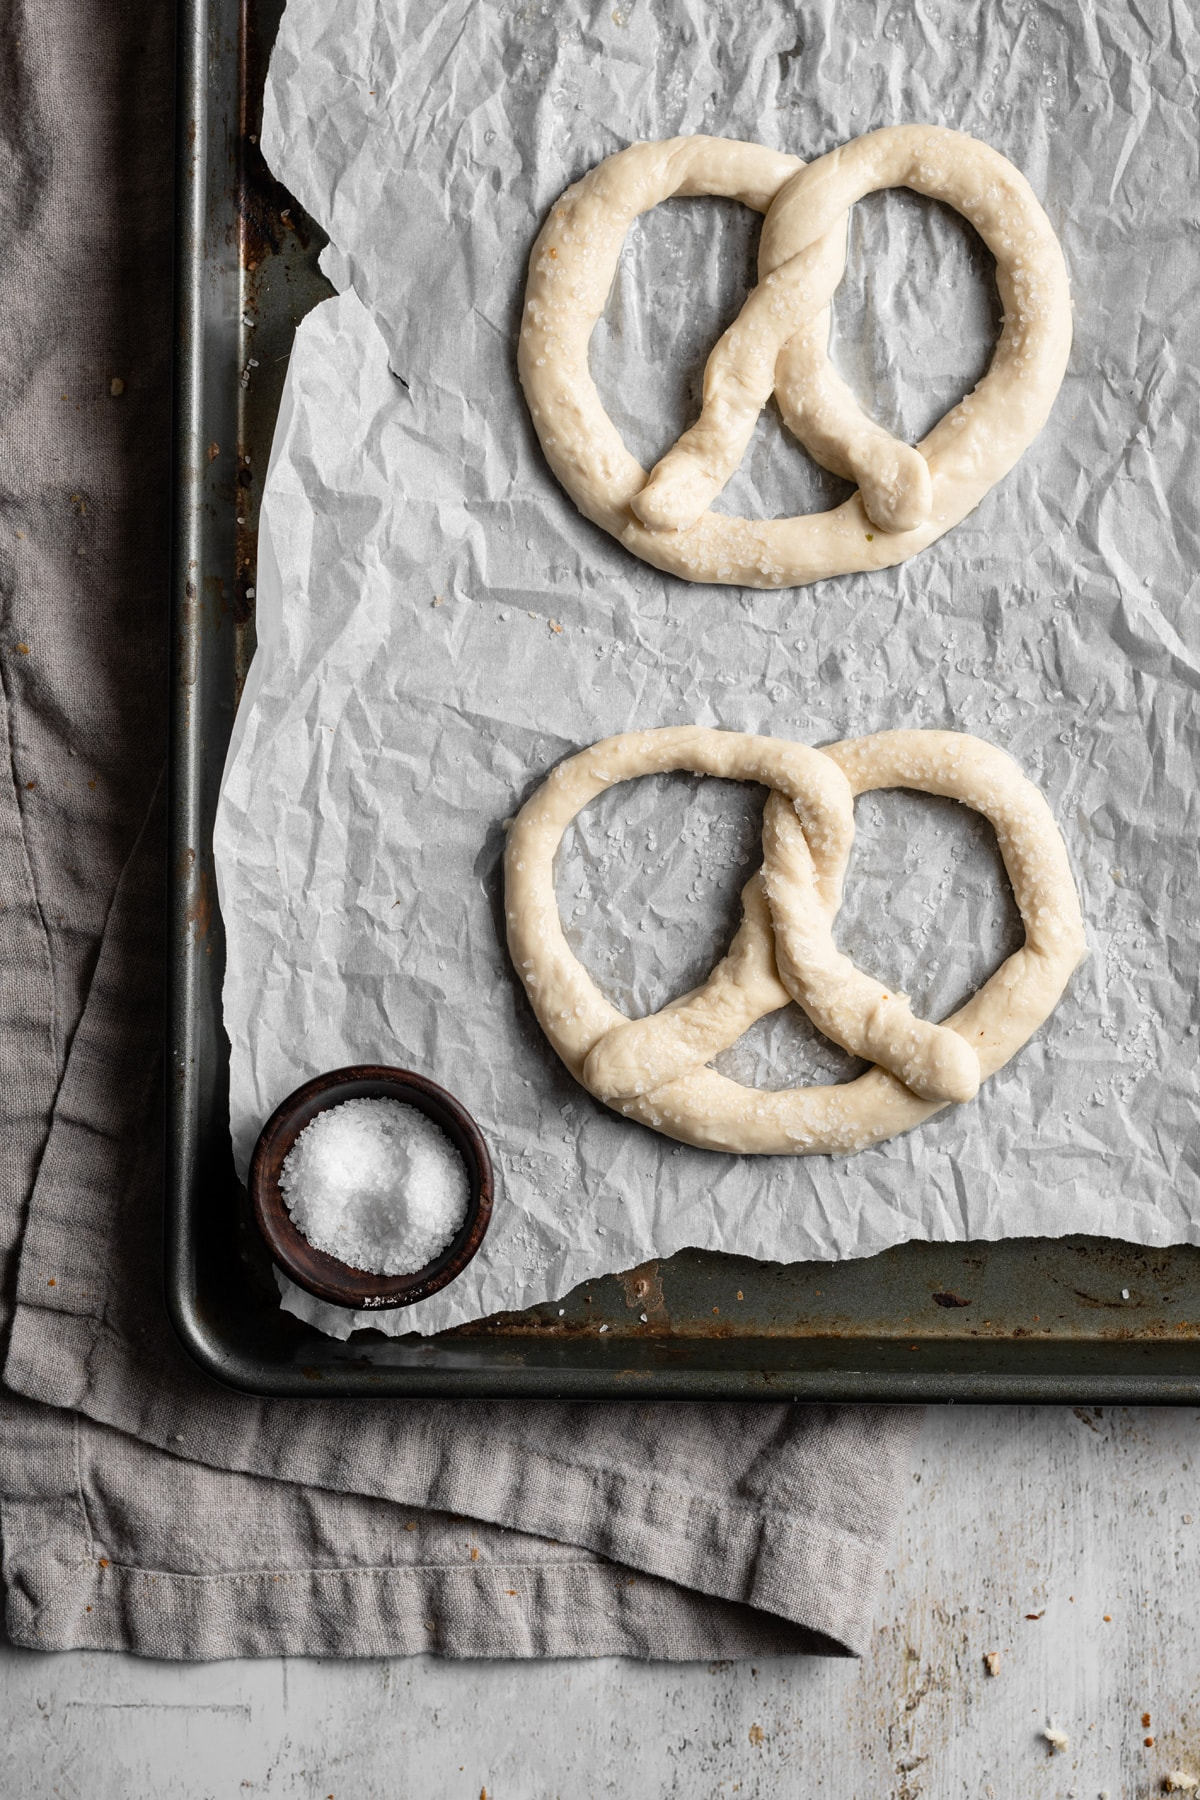 Image showing how to make soft pretzels. Shaping dough into pretzel shapes and they're placed on a parchment paper lined baking sheet to bake.